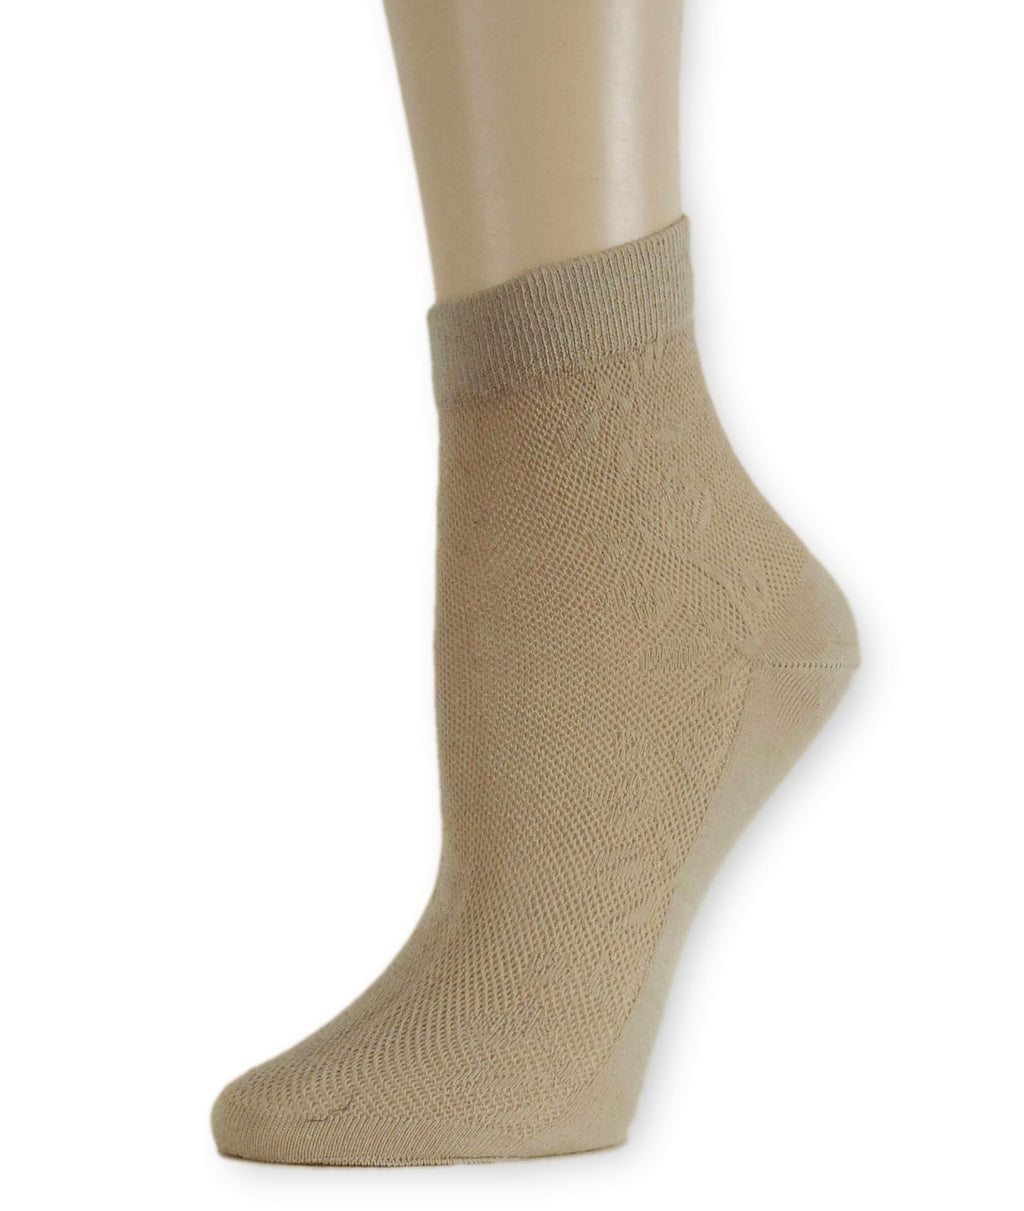 Soft Biege Sheer Socks - Global Trendz Fashion®